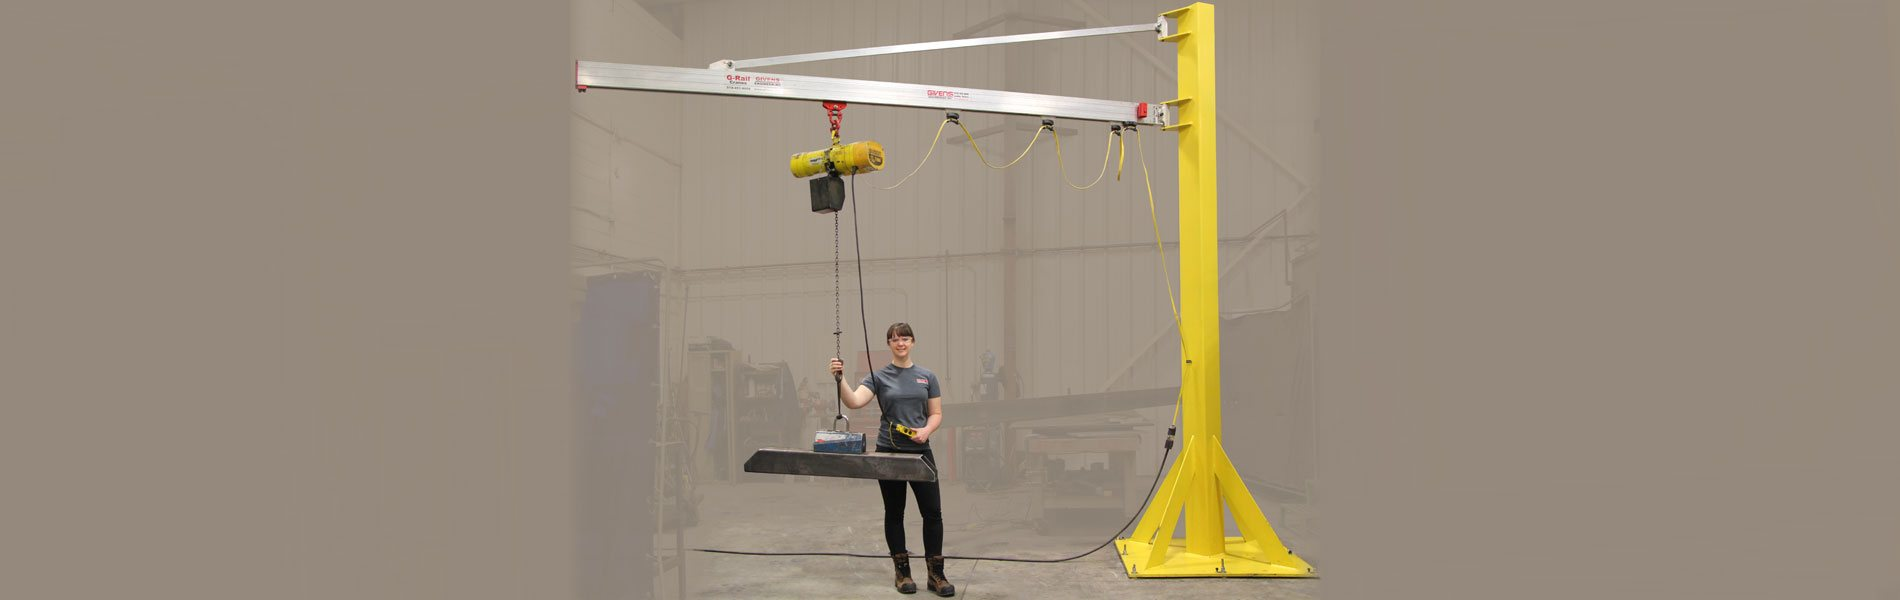 G-Rail Jib Cranes by Givens Engineering Inc.